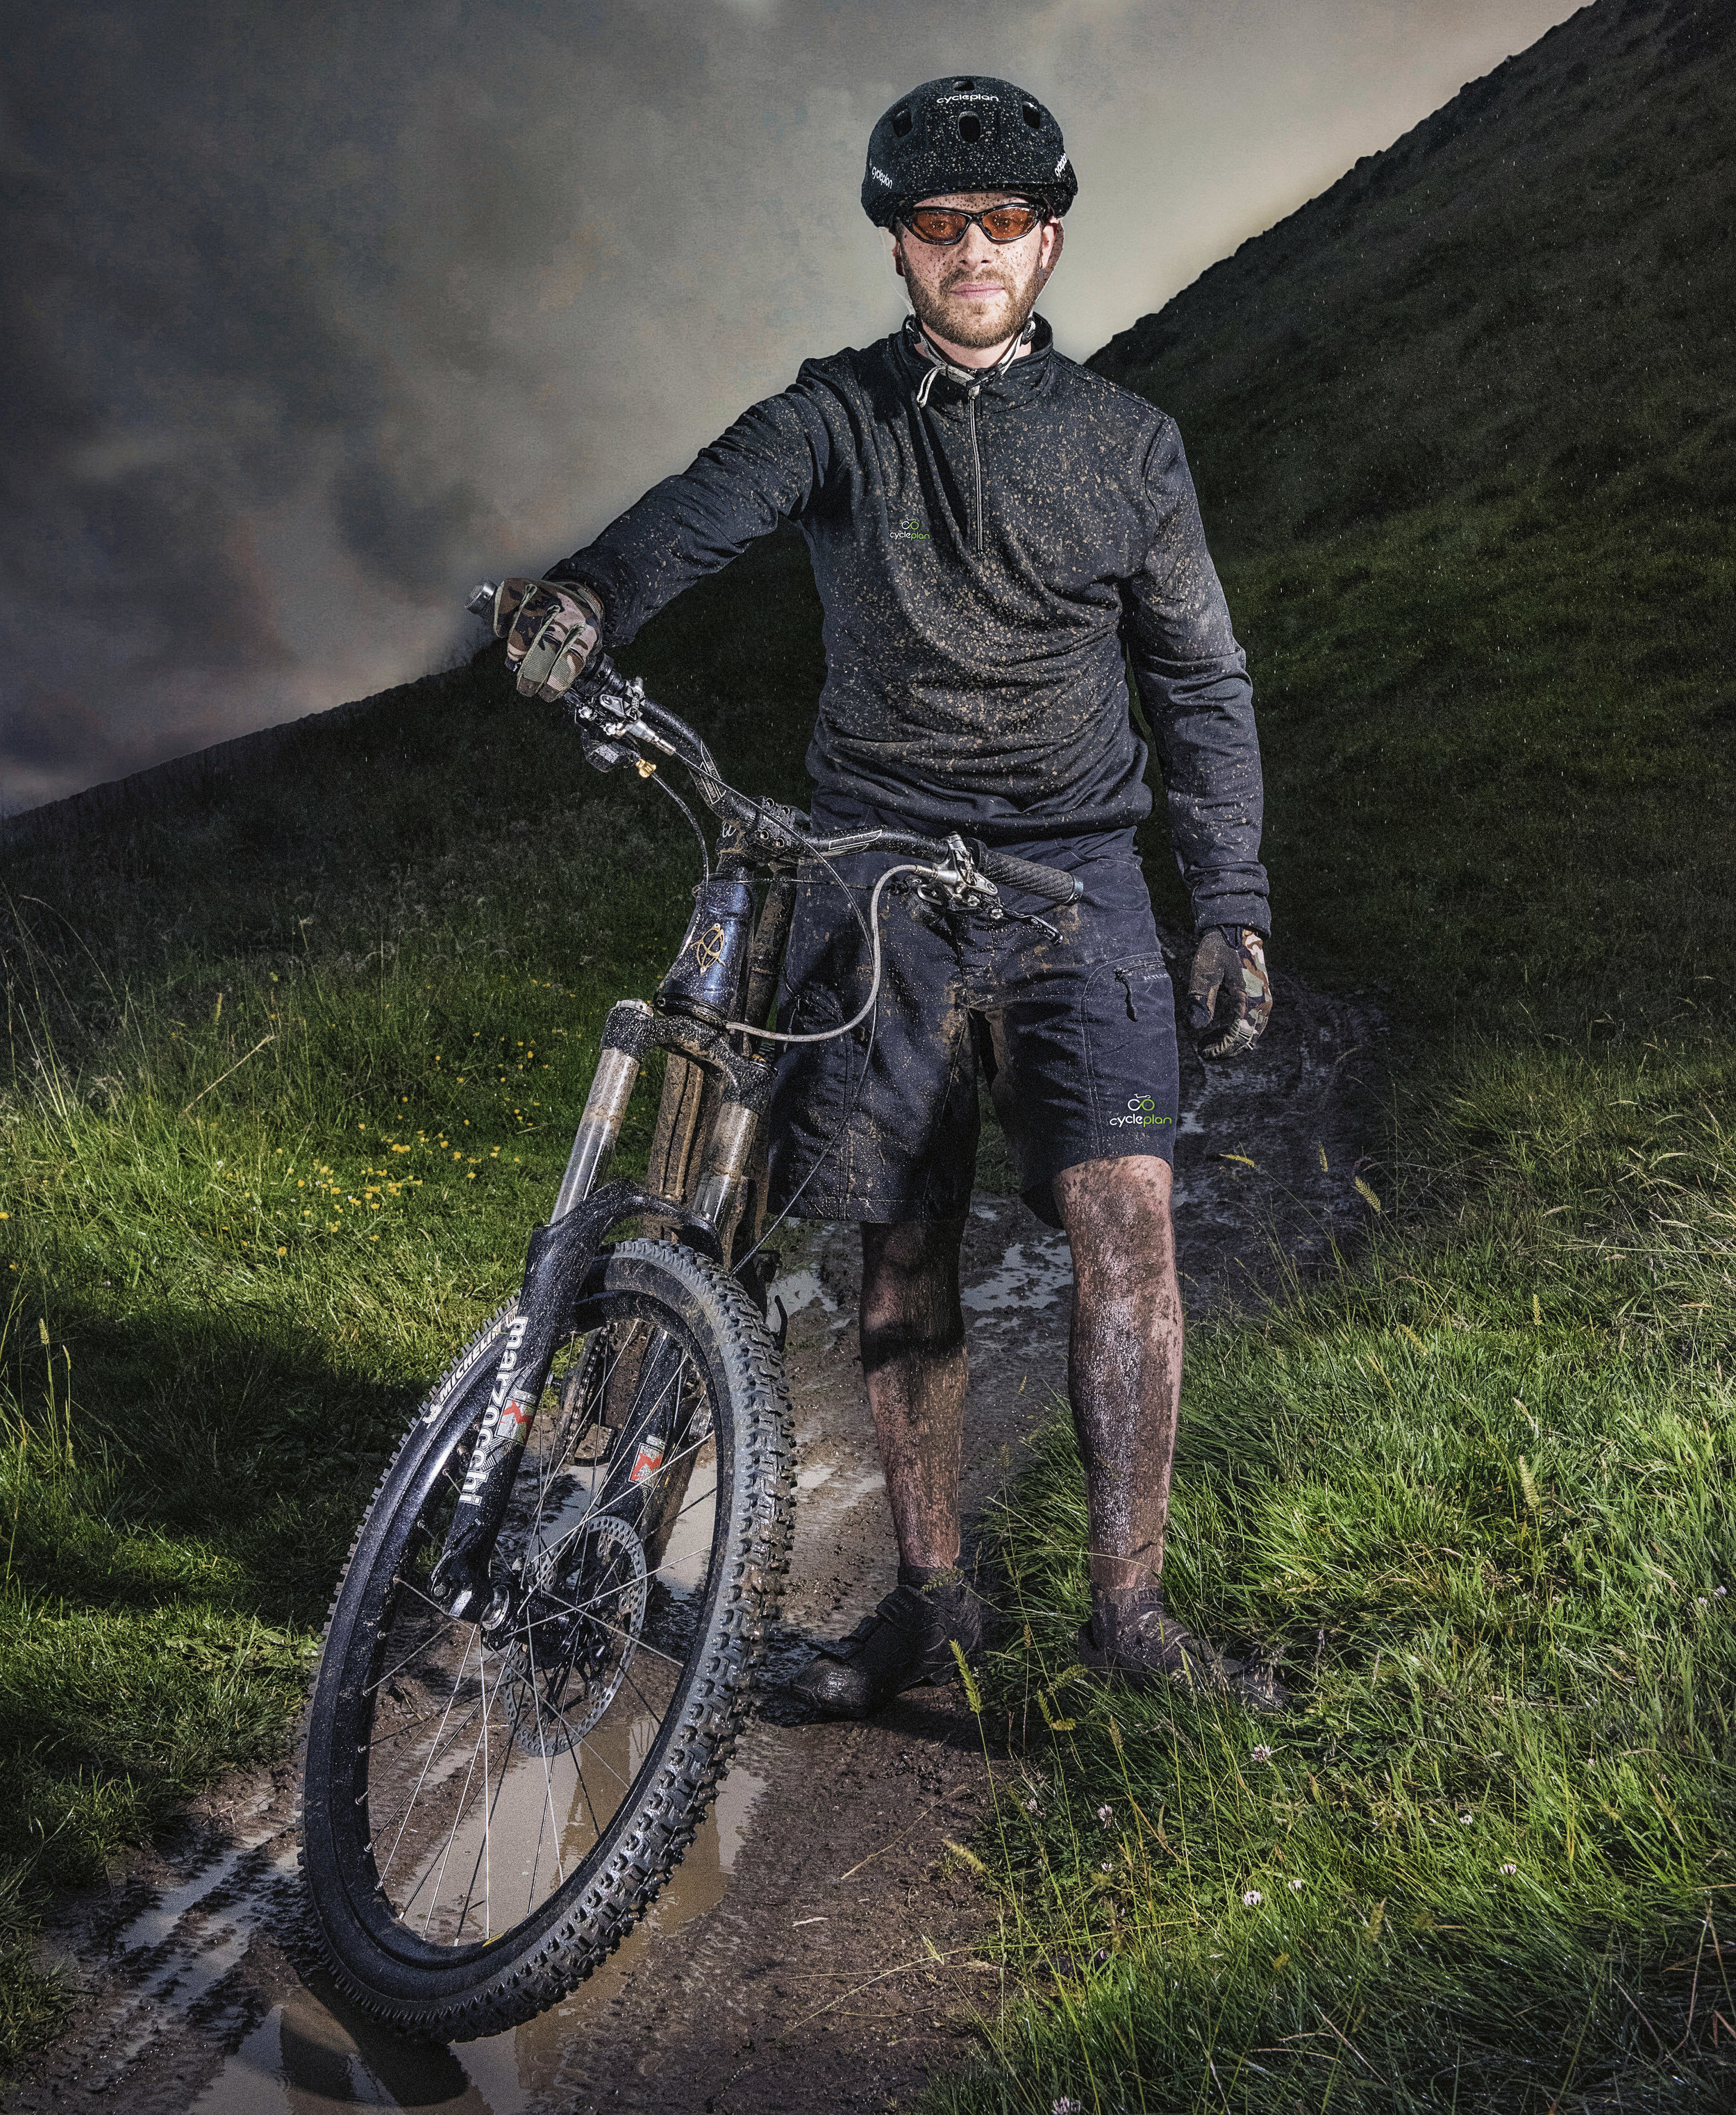 MOUNTAINBIKERPORTRAIT.jpg